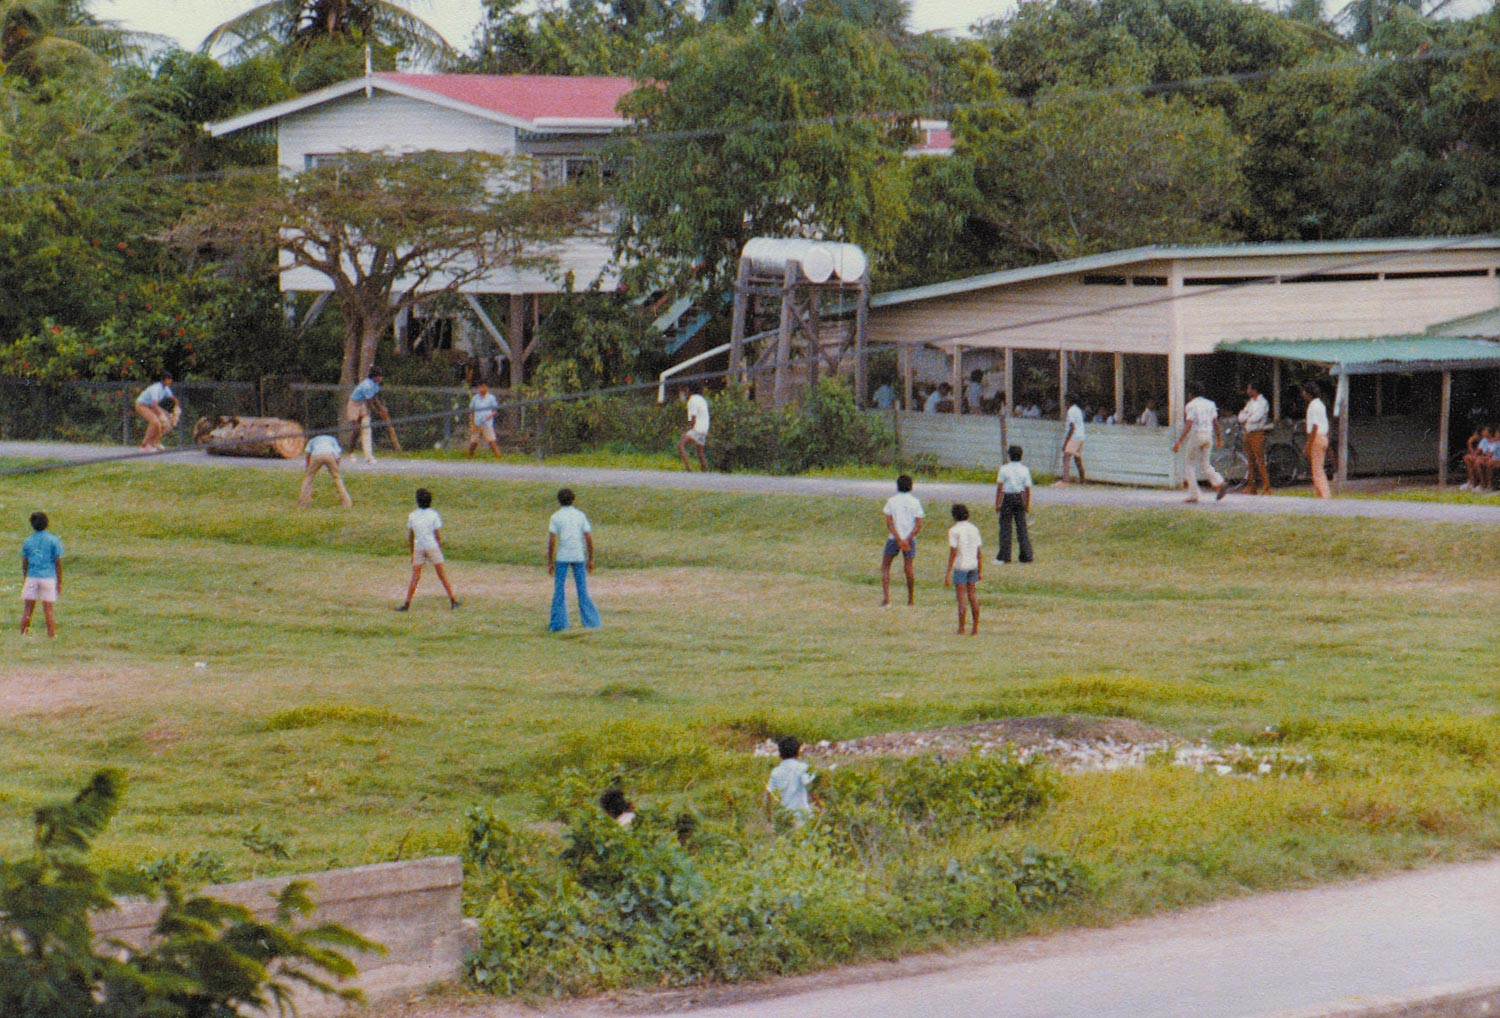 School boys playing cricket in Guyana in the 1960s. Photograph by Chico Khan